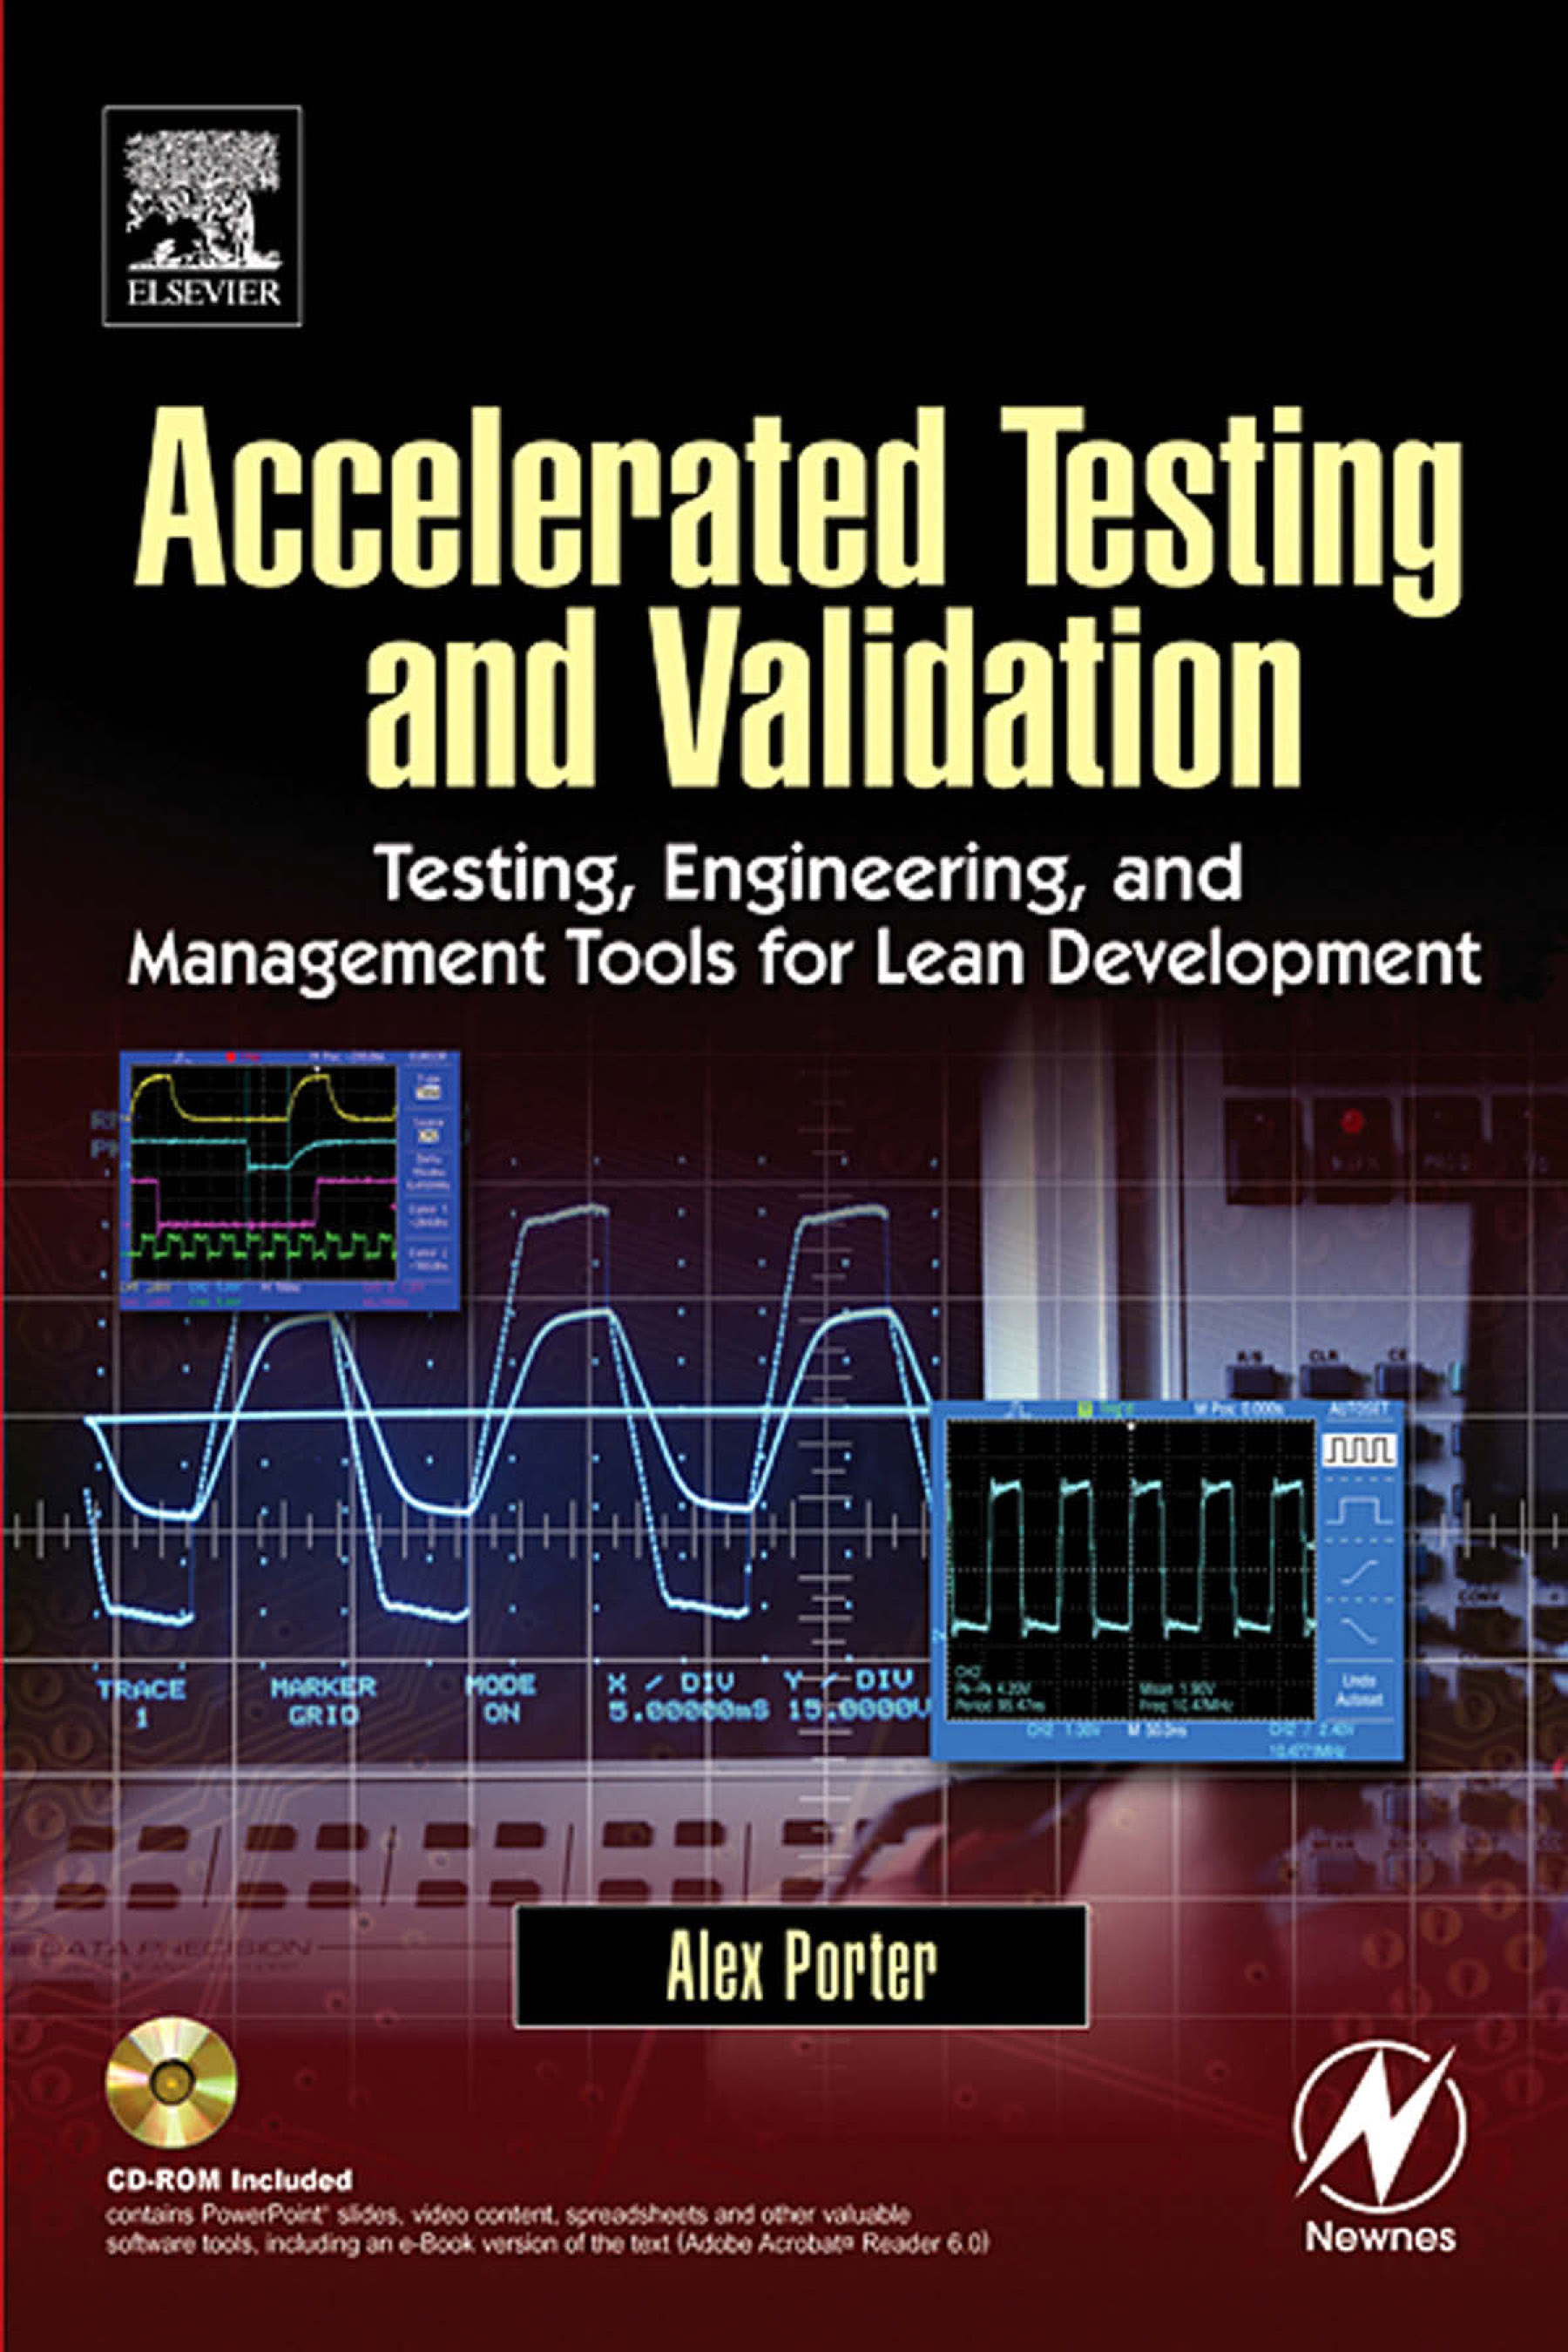 Download Ebook Accelerated Testing and Validation by Alex Porter Pdf